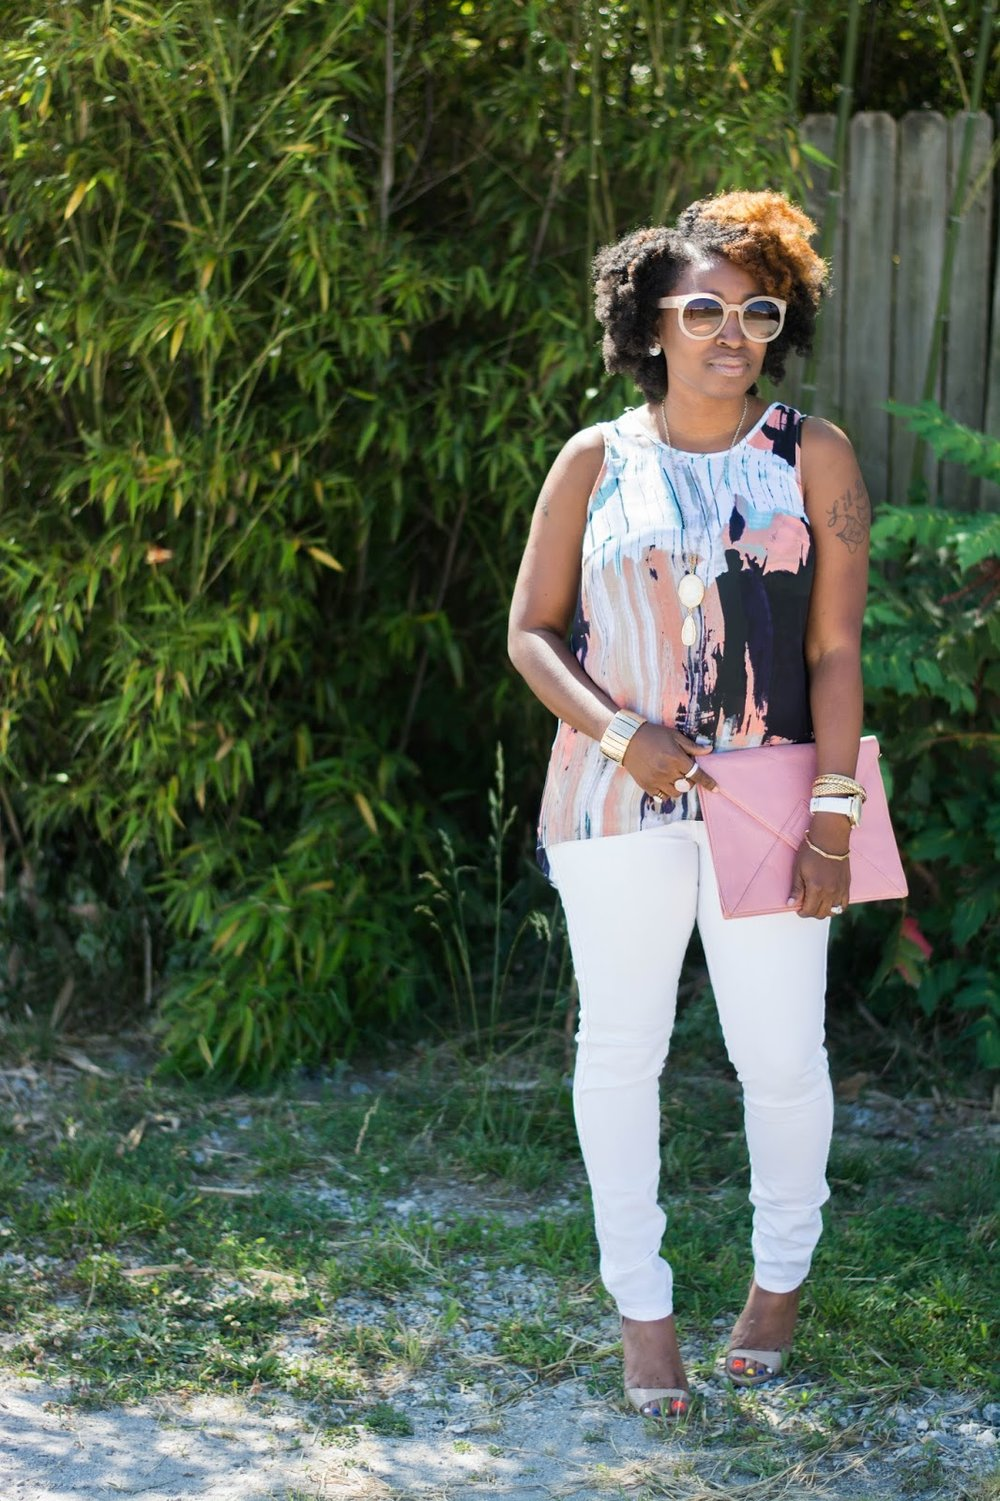 Atlanta style influencer, Atlanta blogger, Atlanta Stylist, Atlanta street fashion, street style, black girl rock, black girl magic, natural girls rock, natural hair, 4c hair chick, thrifted fashion, hm skinny jeans, black blogger, brown girl blogger, shoedazzle, fashion blogger, stylist, black girls killing it, mossimo, aldo sunnies, nude heels, white jeans, petite style, charming charlie watch, charlotte russe accessories